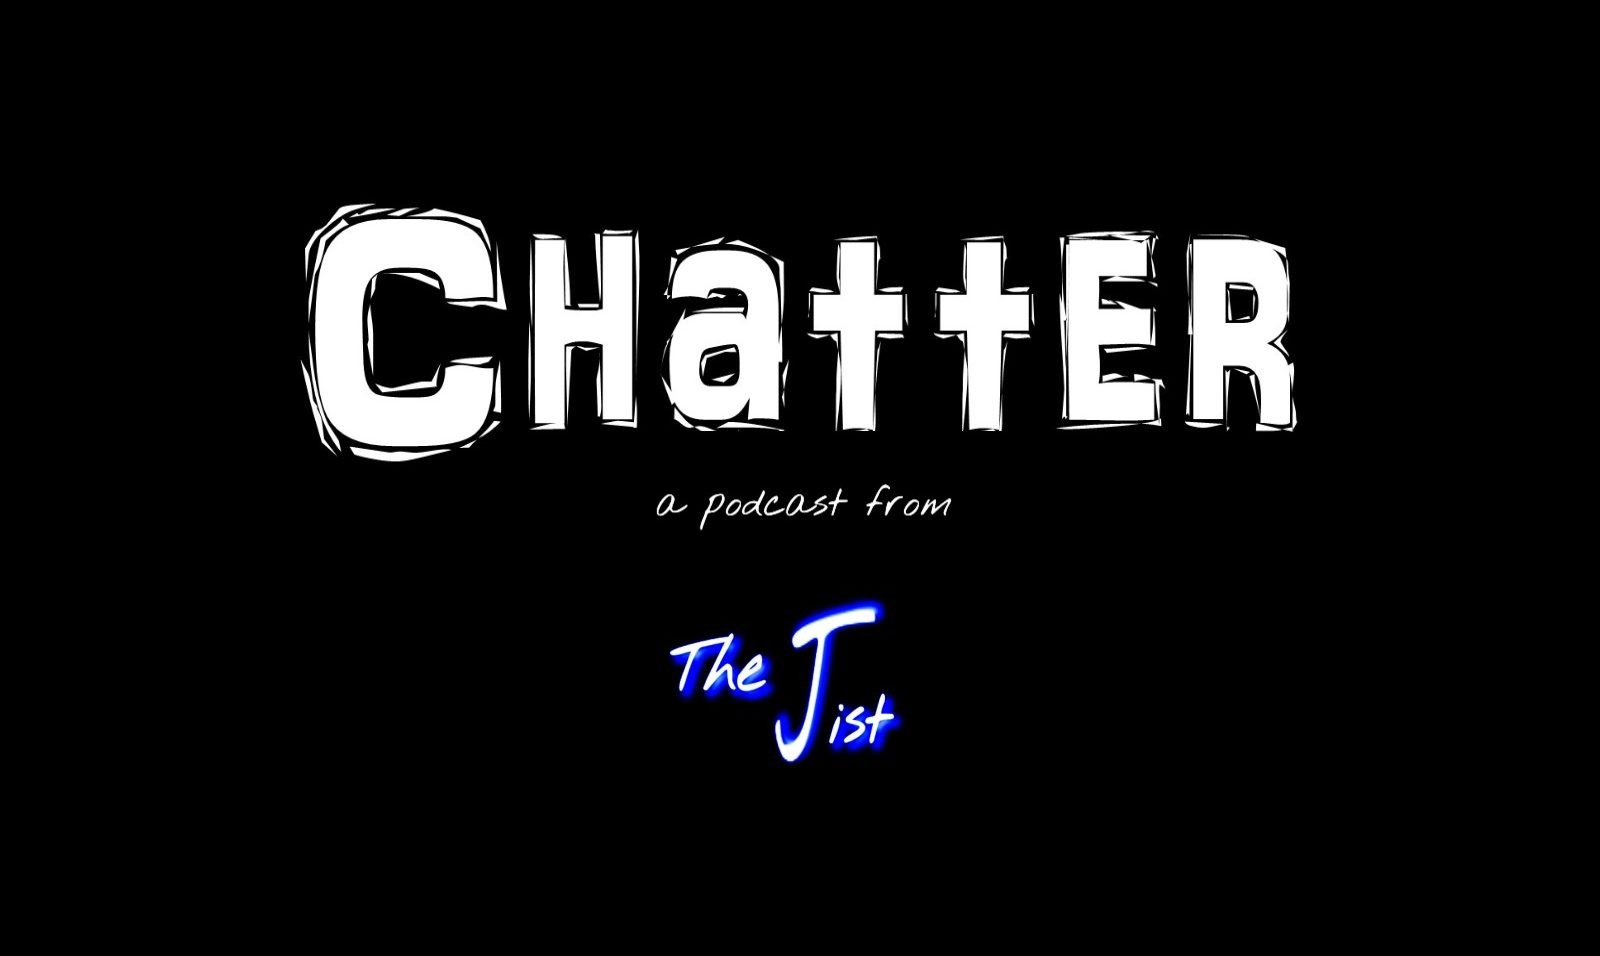 Chatter Episode 43 – Jackson Rawlings on How We Could Reform the UK Political System